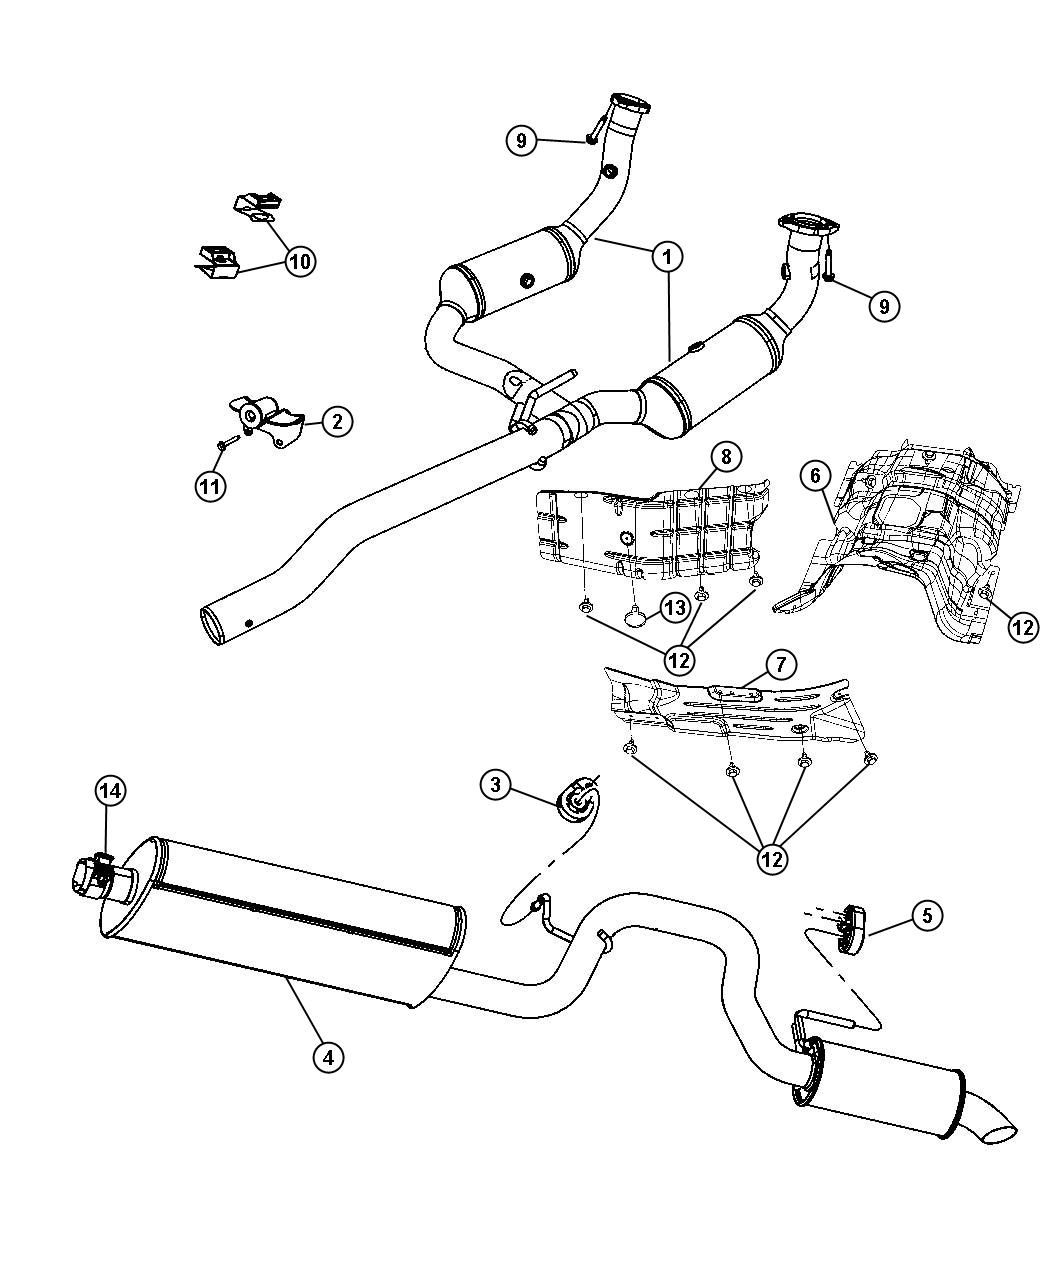 Jeep Liberty Used For Muffler And Tailpipe Exhaust